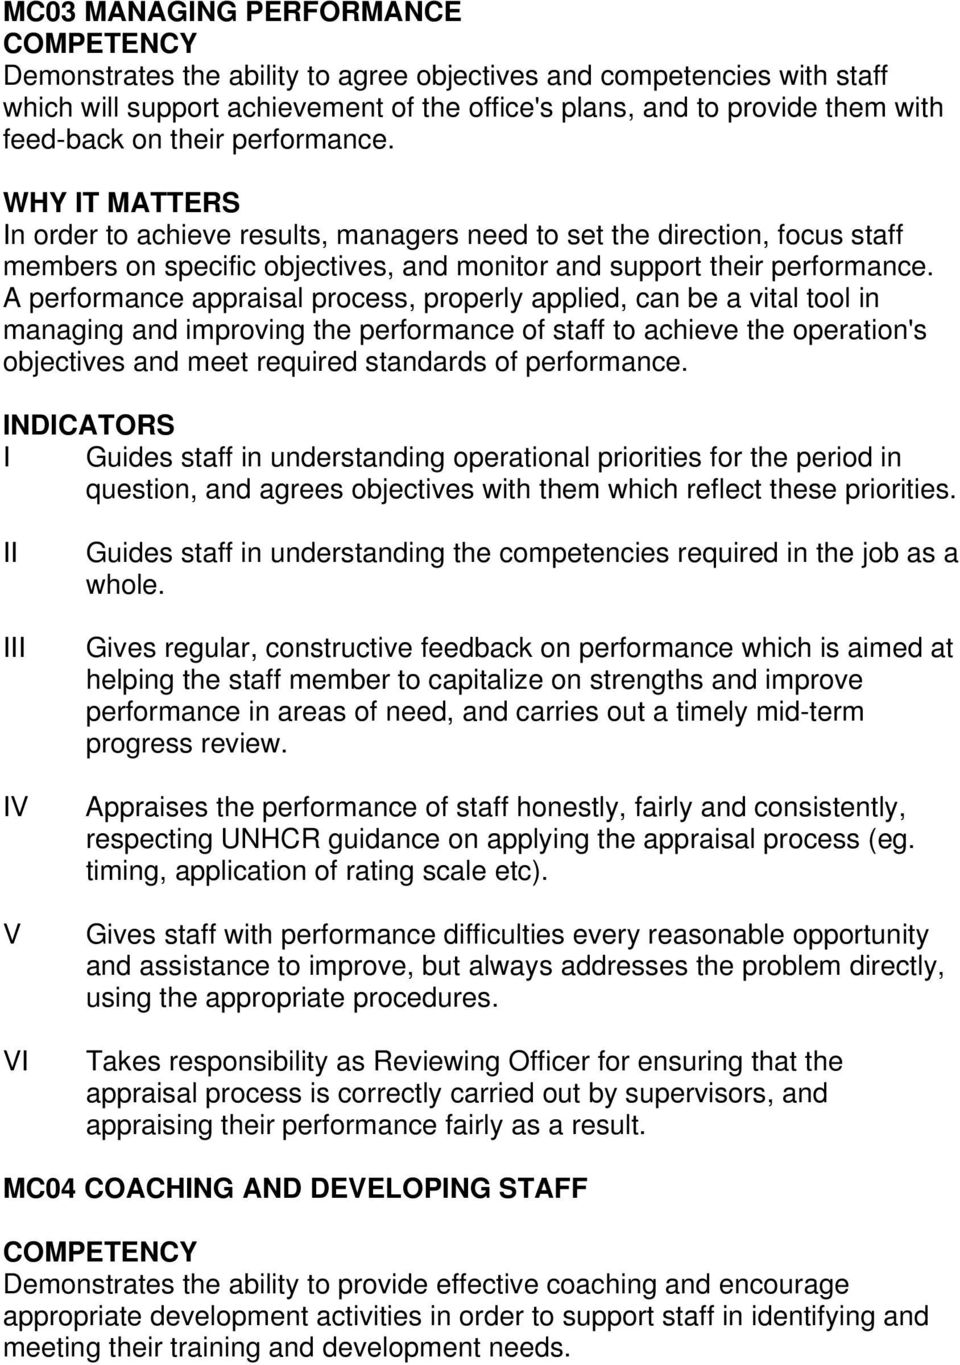 A performance appraisal process, properly applied, can be a vital tool in managing and improving the performance of staff to achieve the operation's objectives and meet required standards of